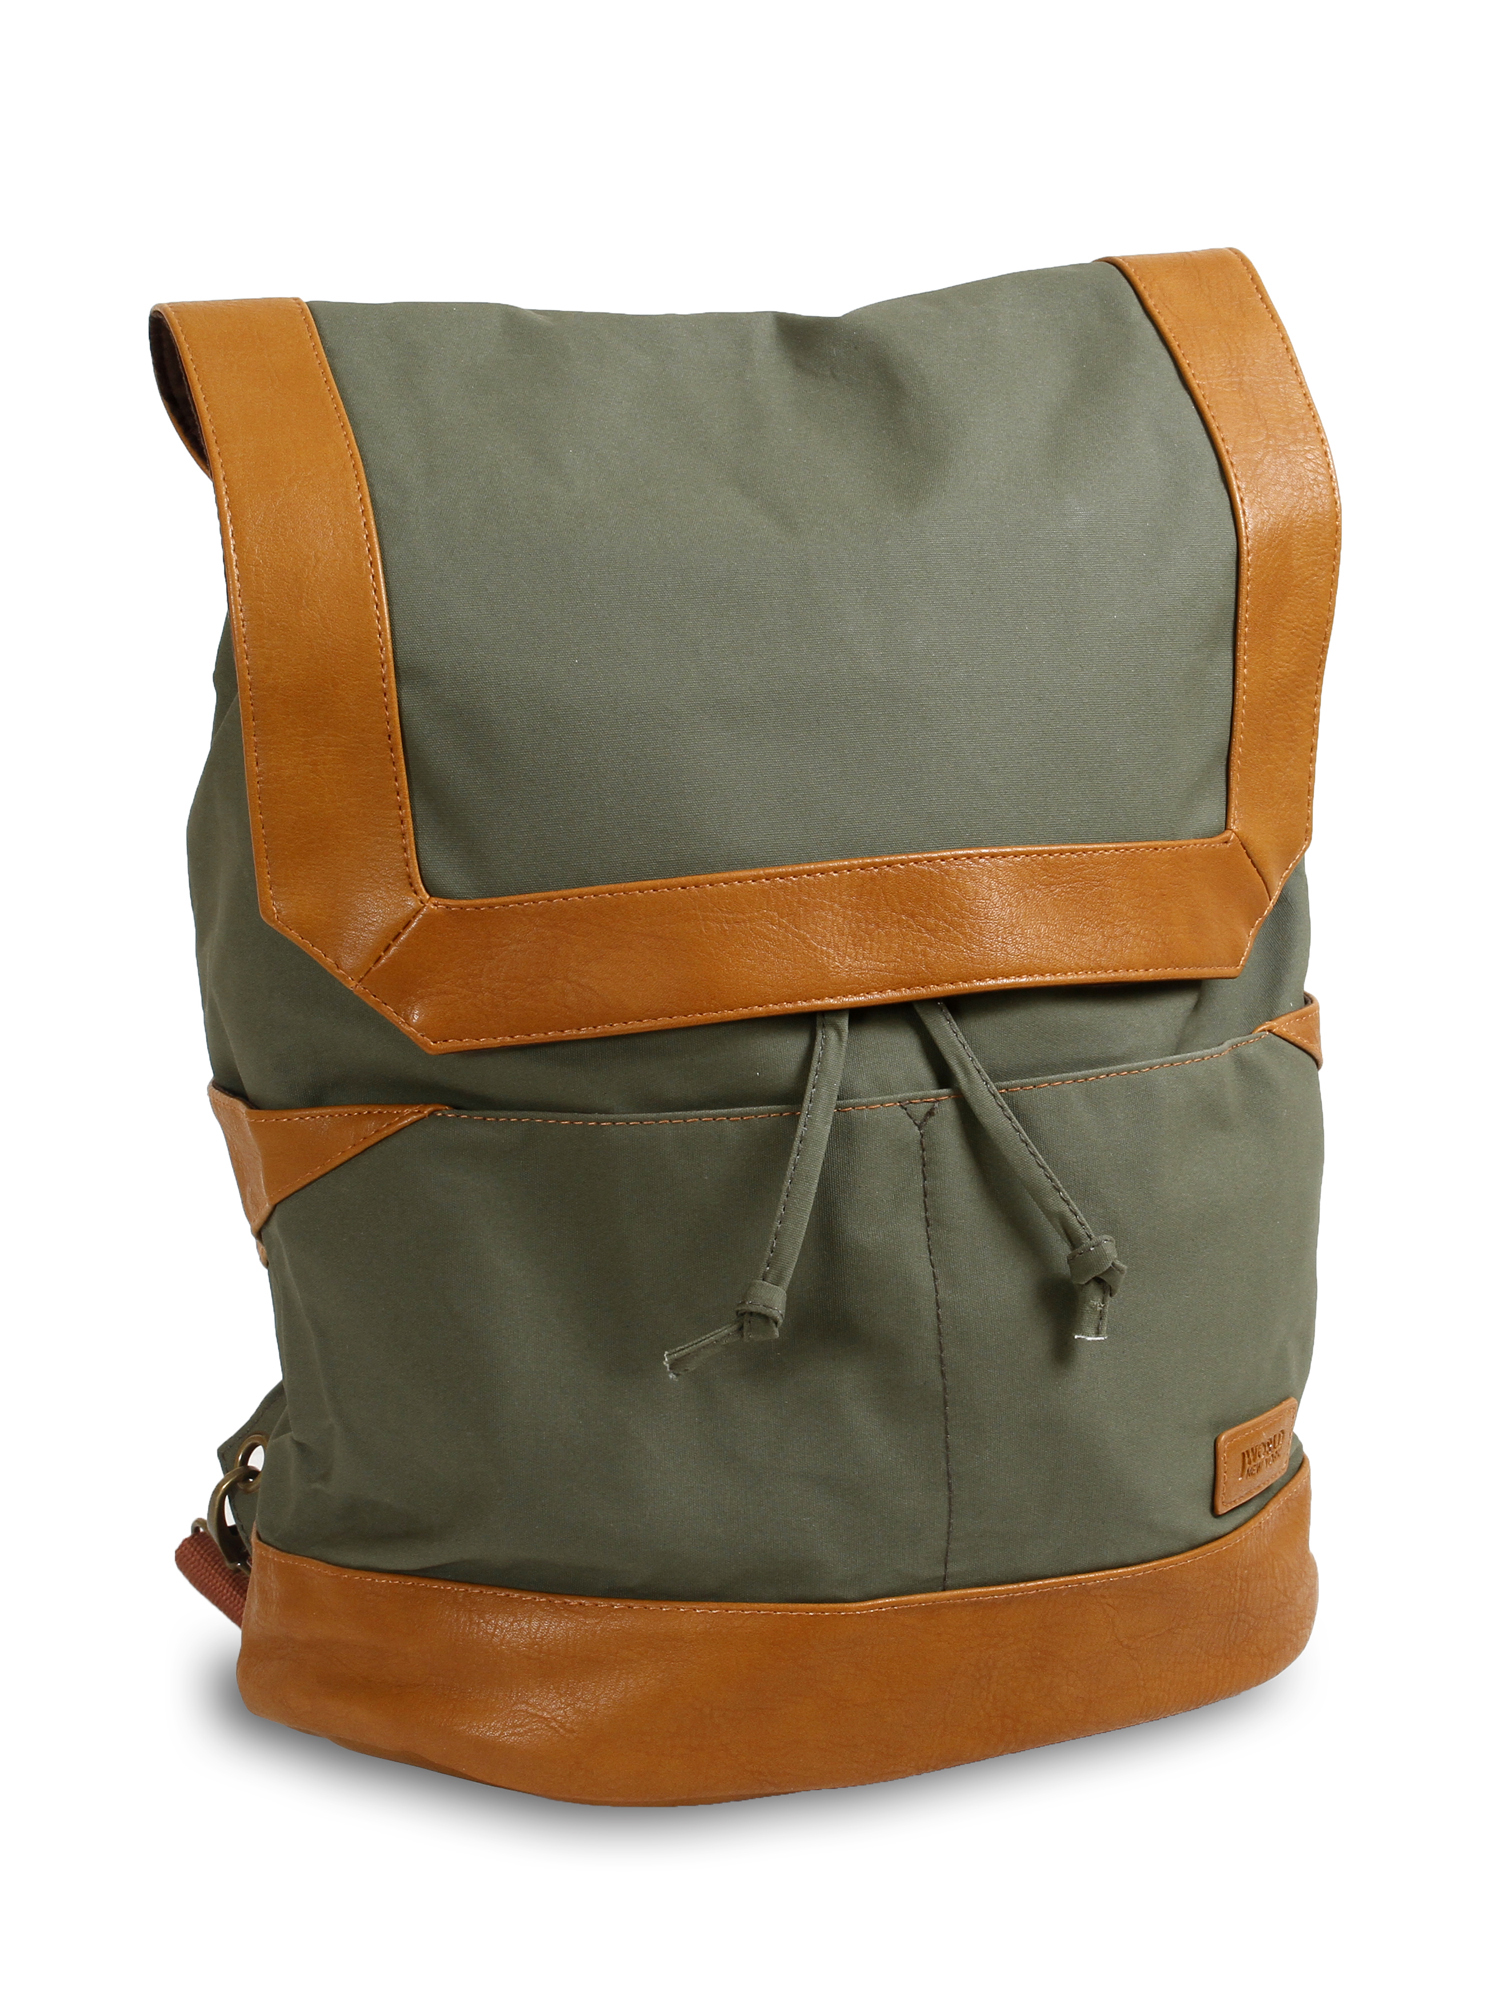 J World Alex Canvas Backpack, Multiple Colors